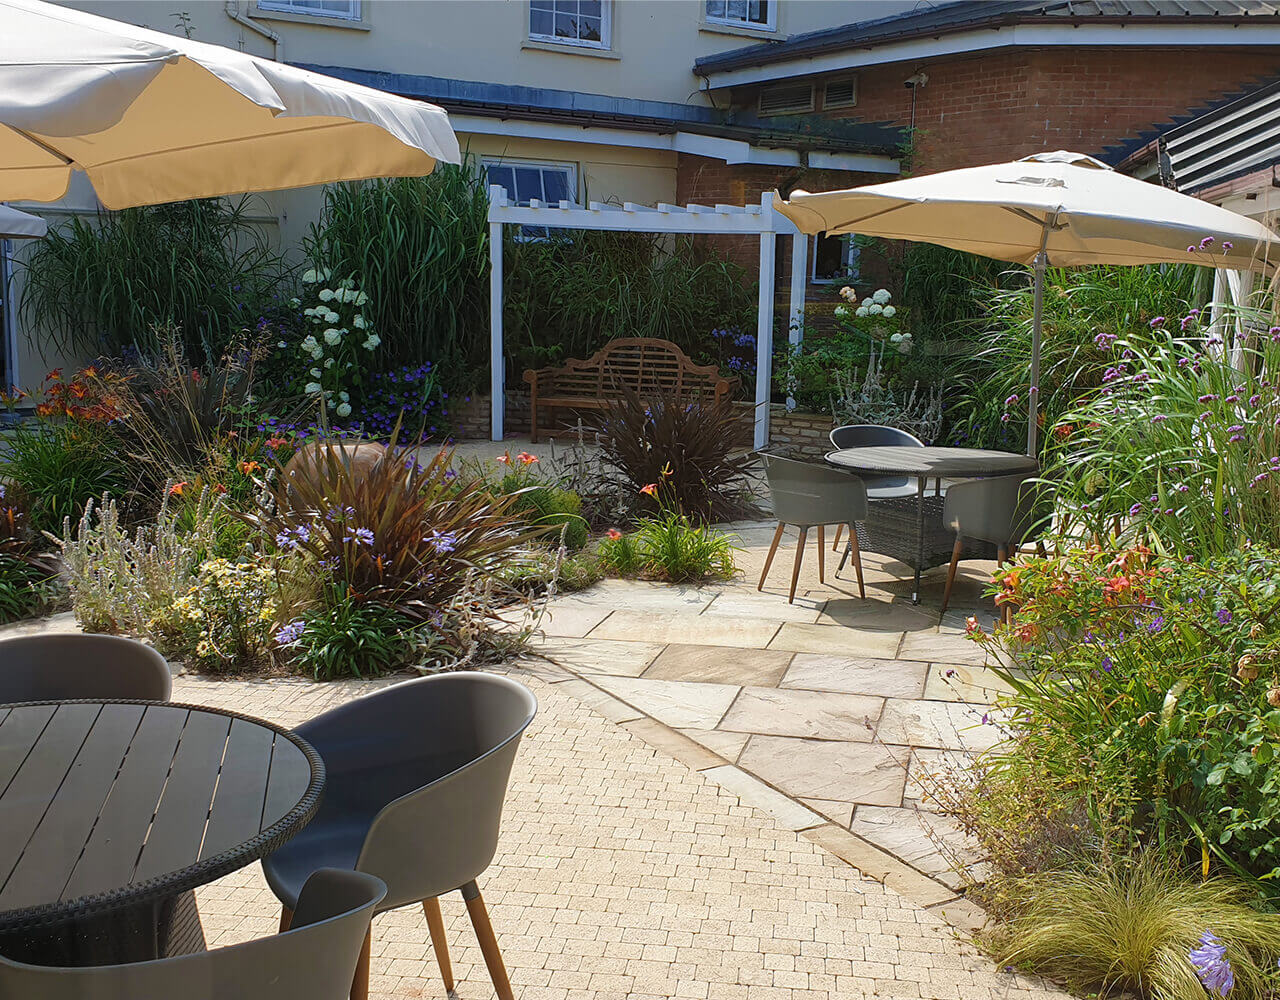 Outside patio area with garden furniture